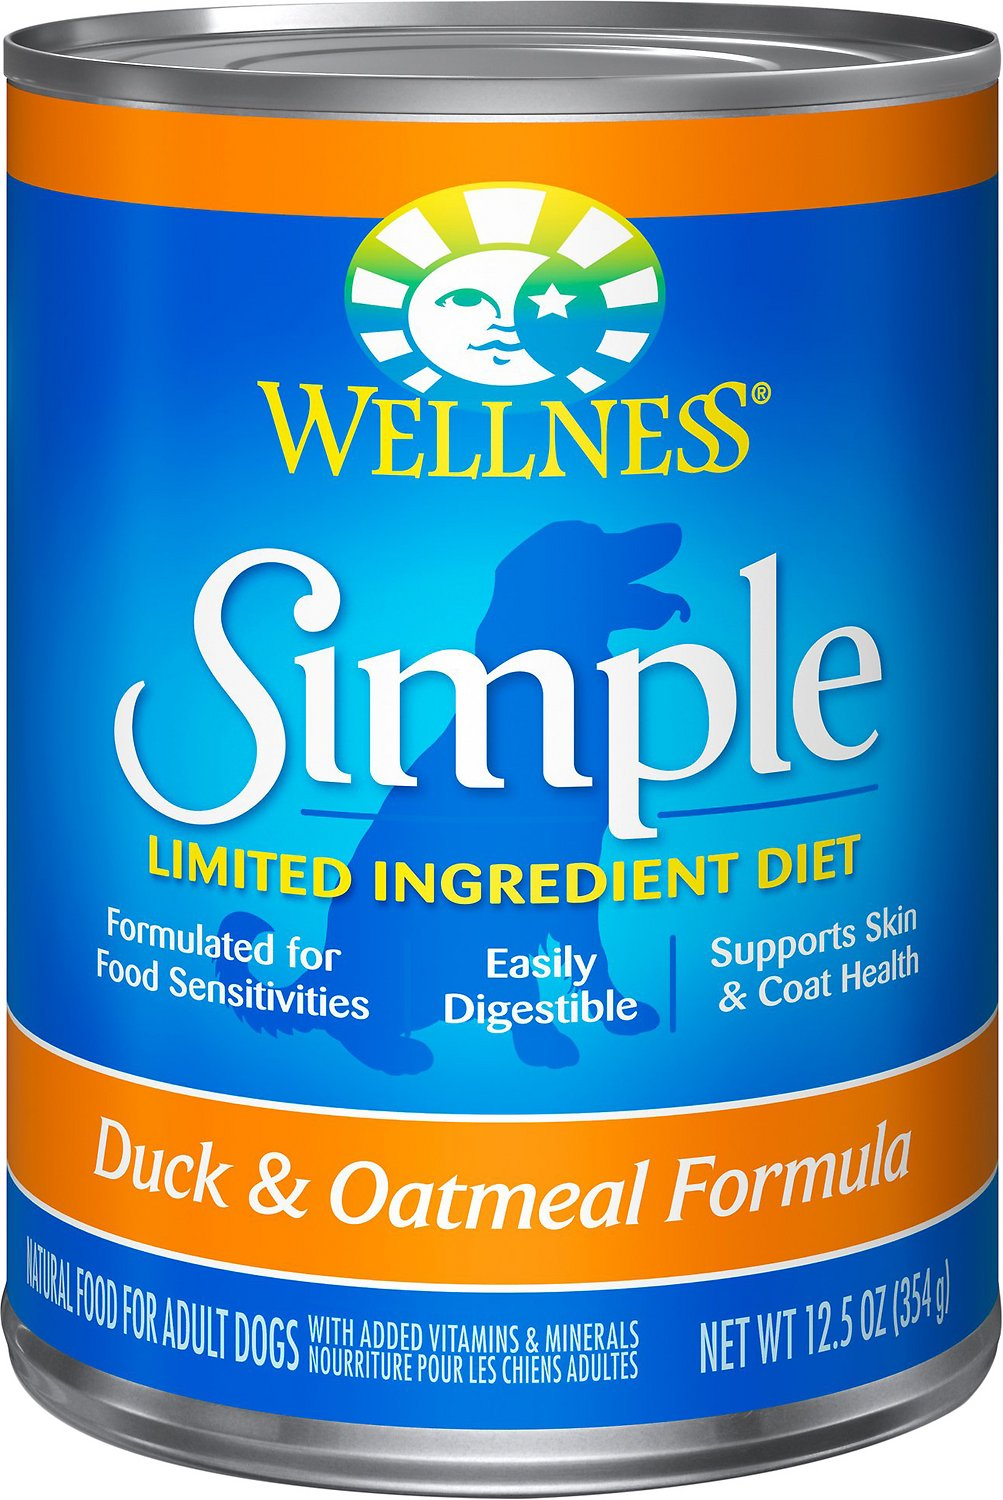 Wellness Simple Limited Ingredient Diet Duck & Oatmeal Formula Canned Dog Food, 12.5-oz, case of 12